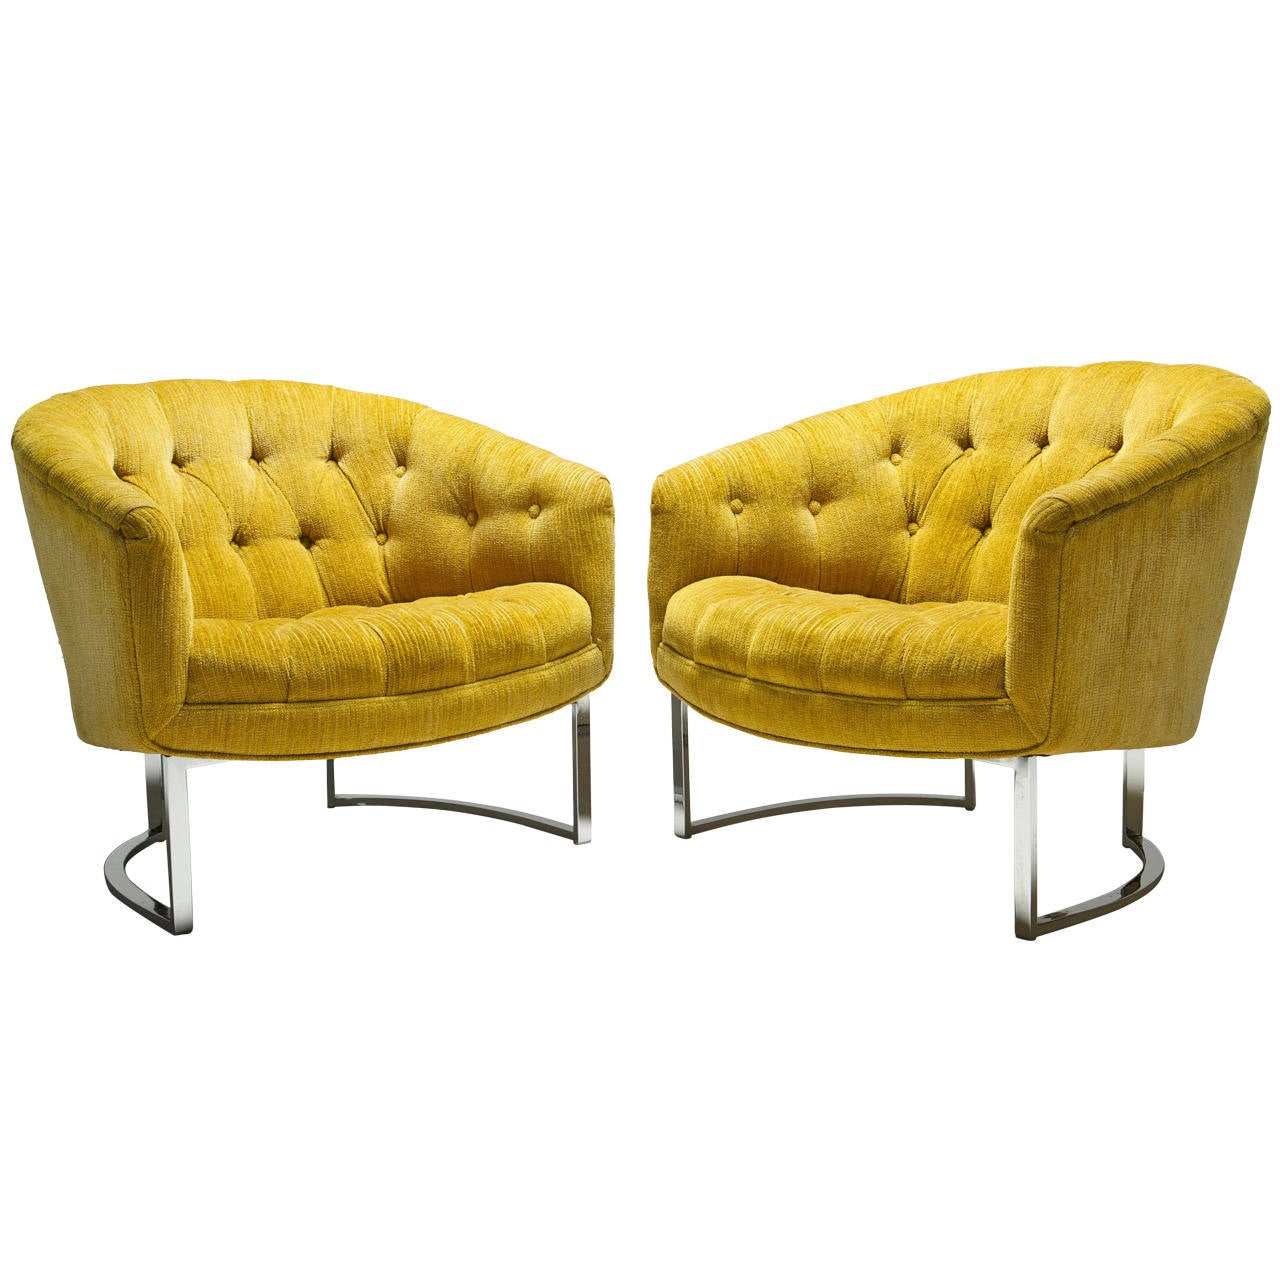 Yellow Chairs Yellow And Chrome Baughman Style Tufted Lounge Chairs At